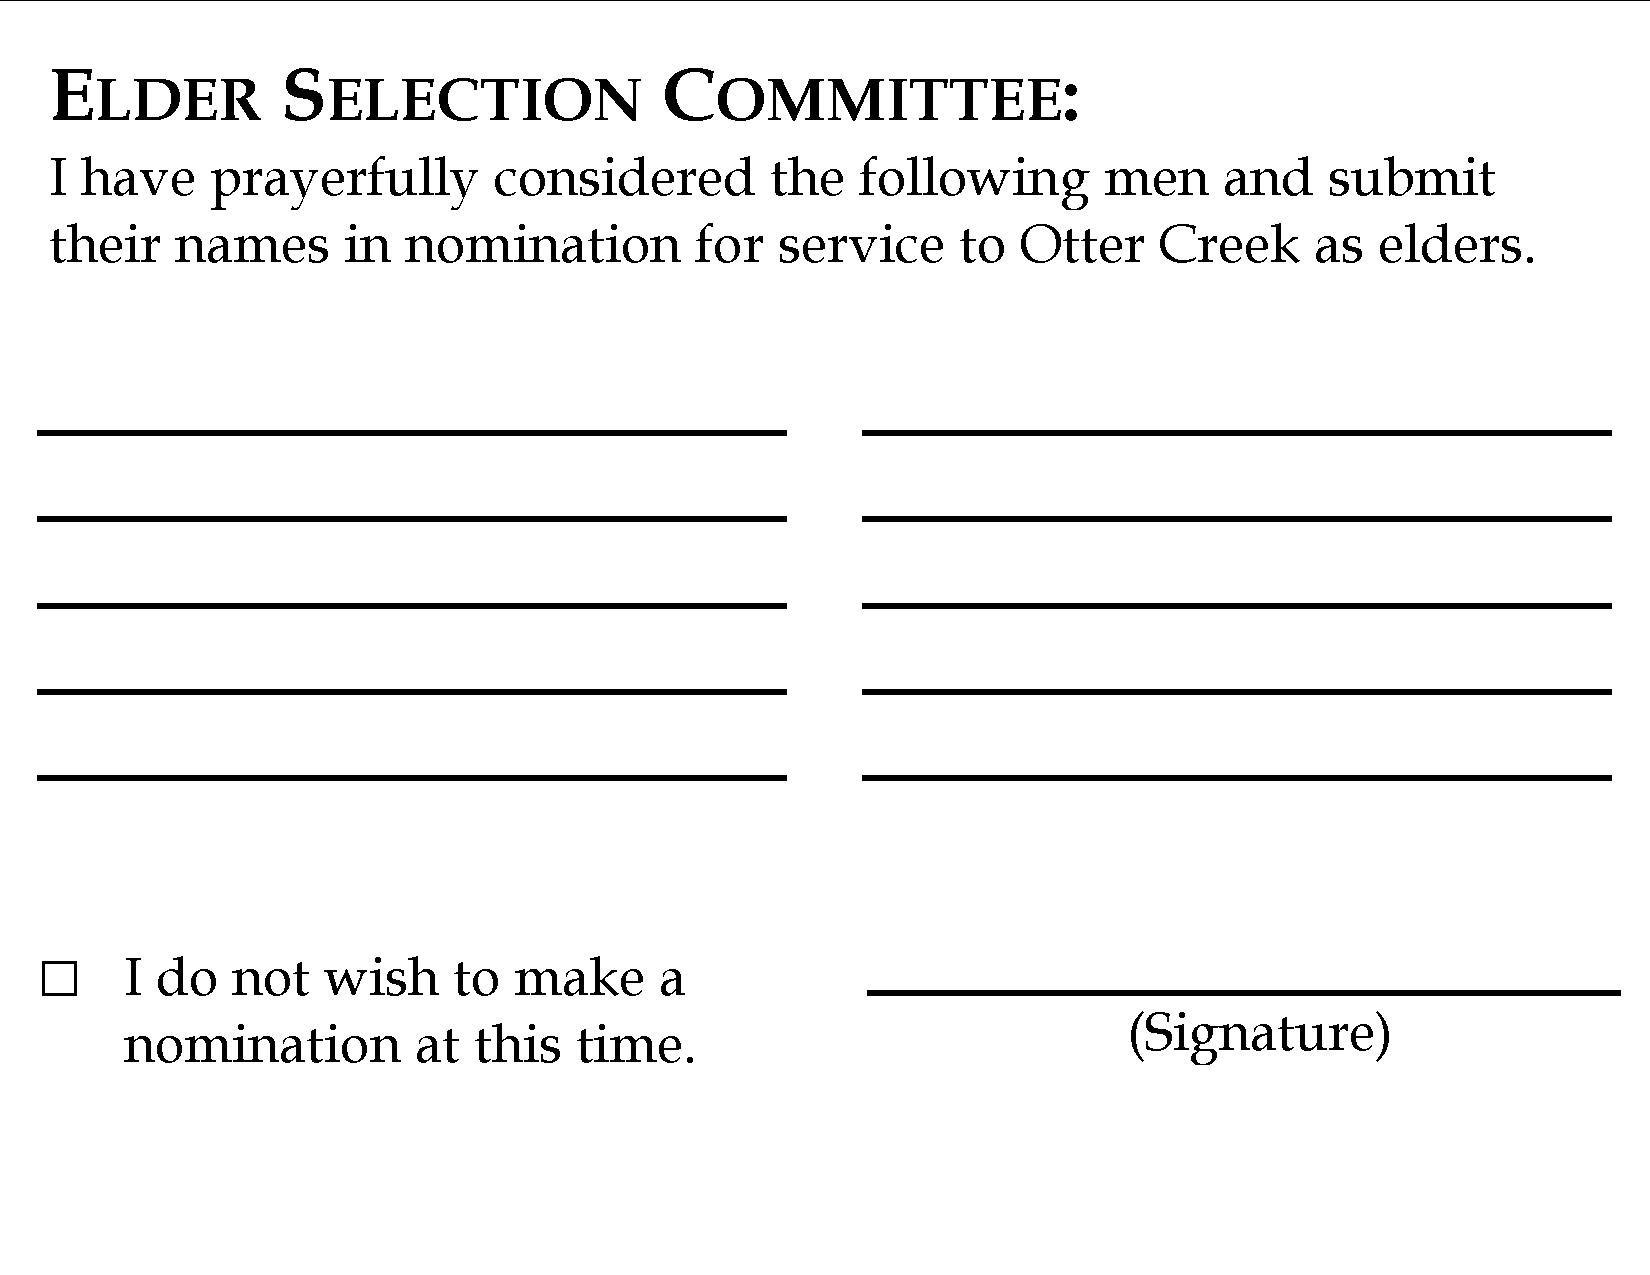 Form used by congregation to nominate new Shepherds.